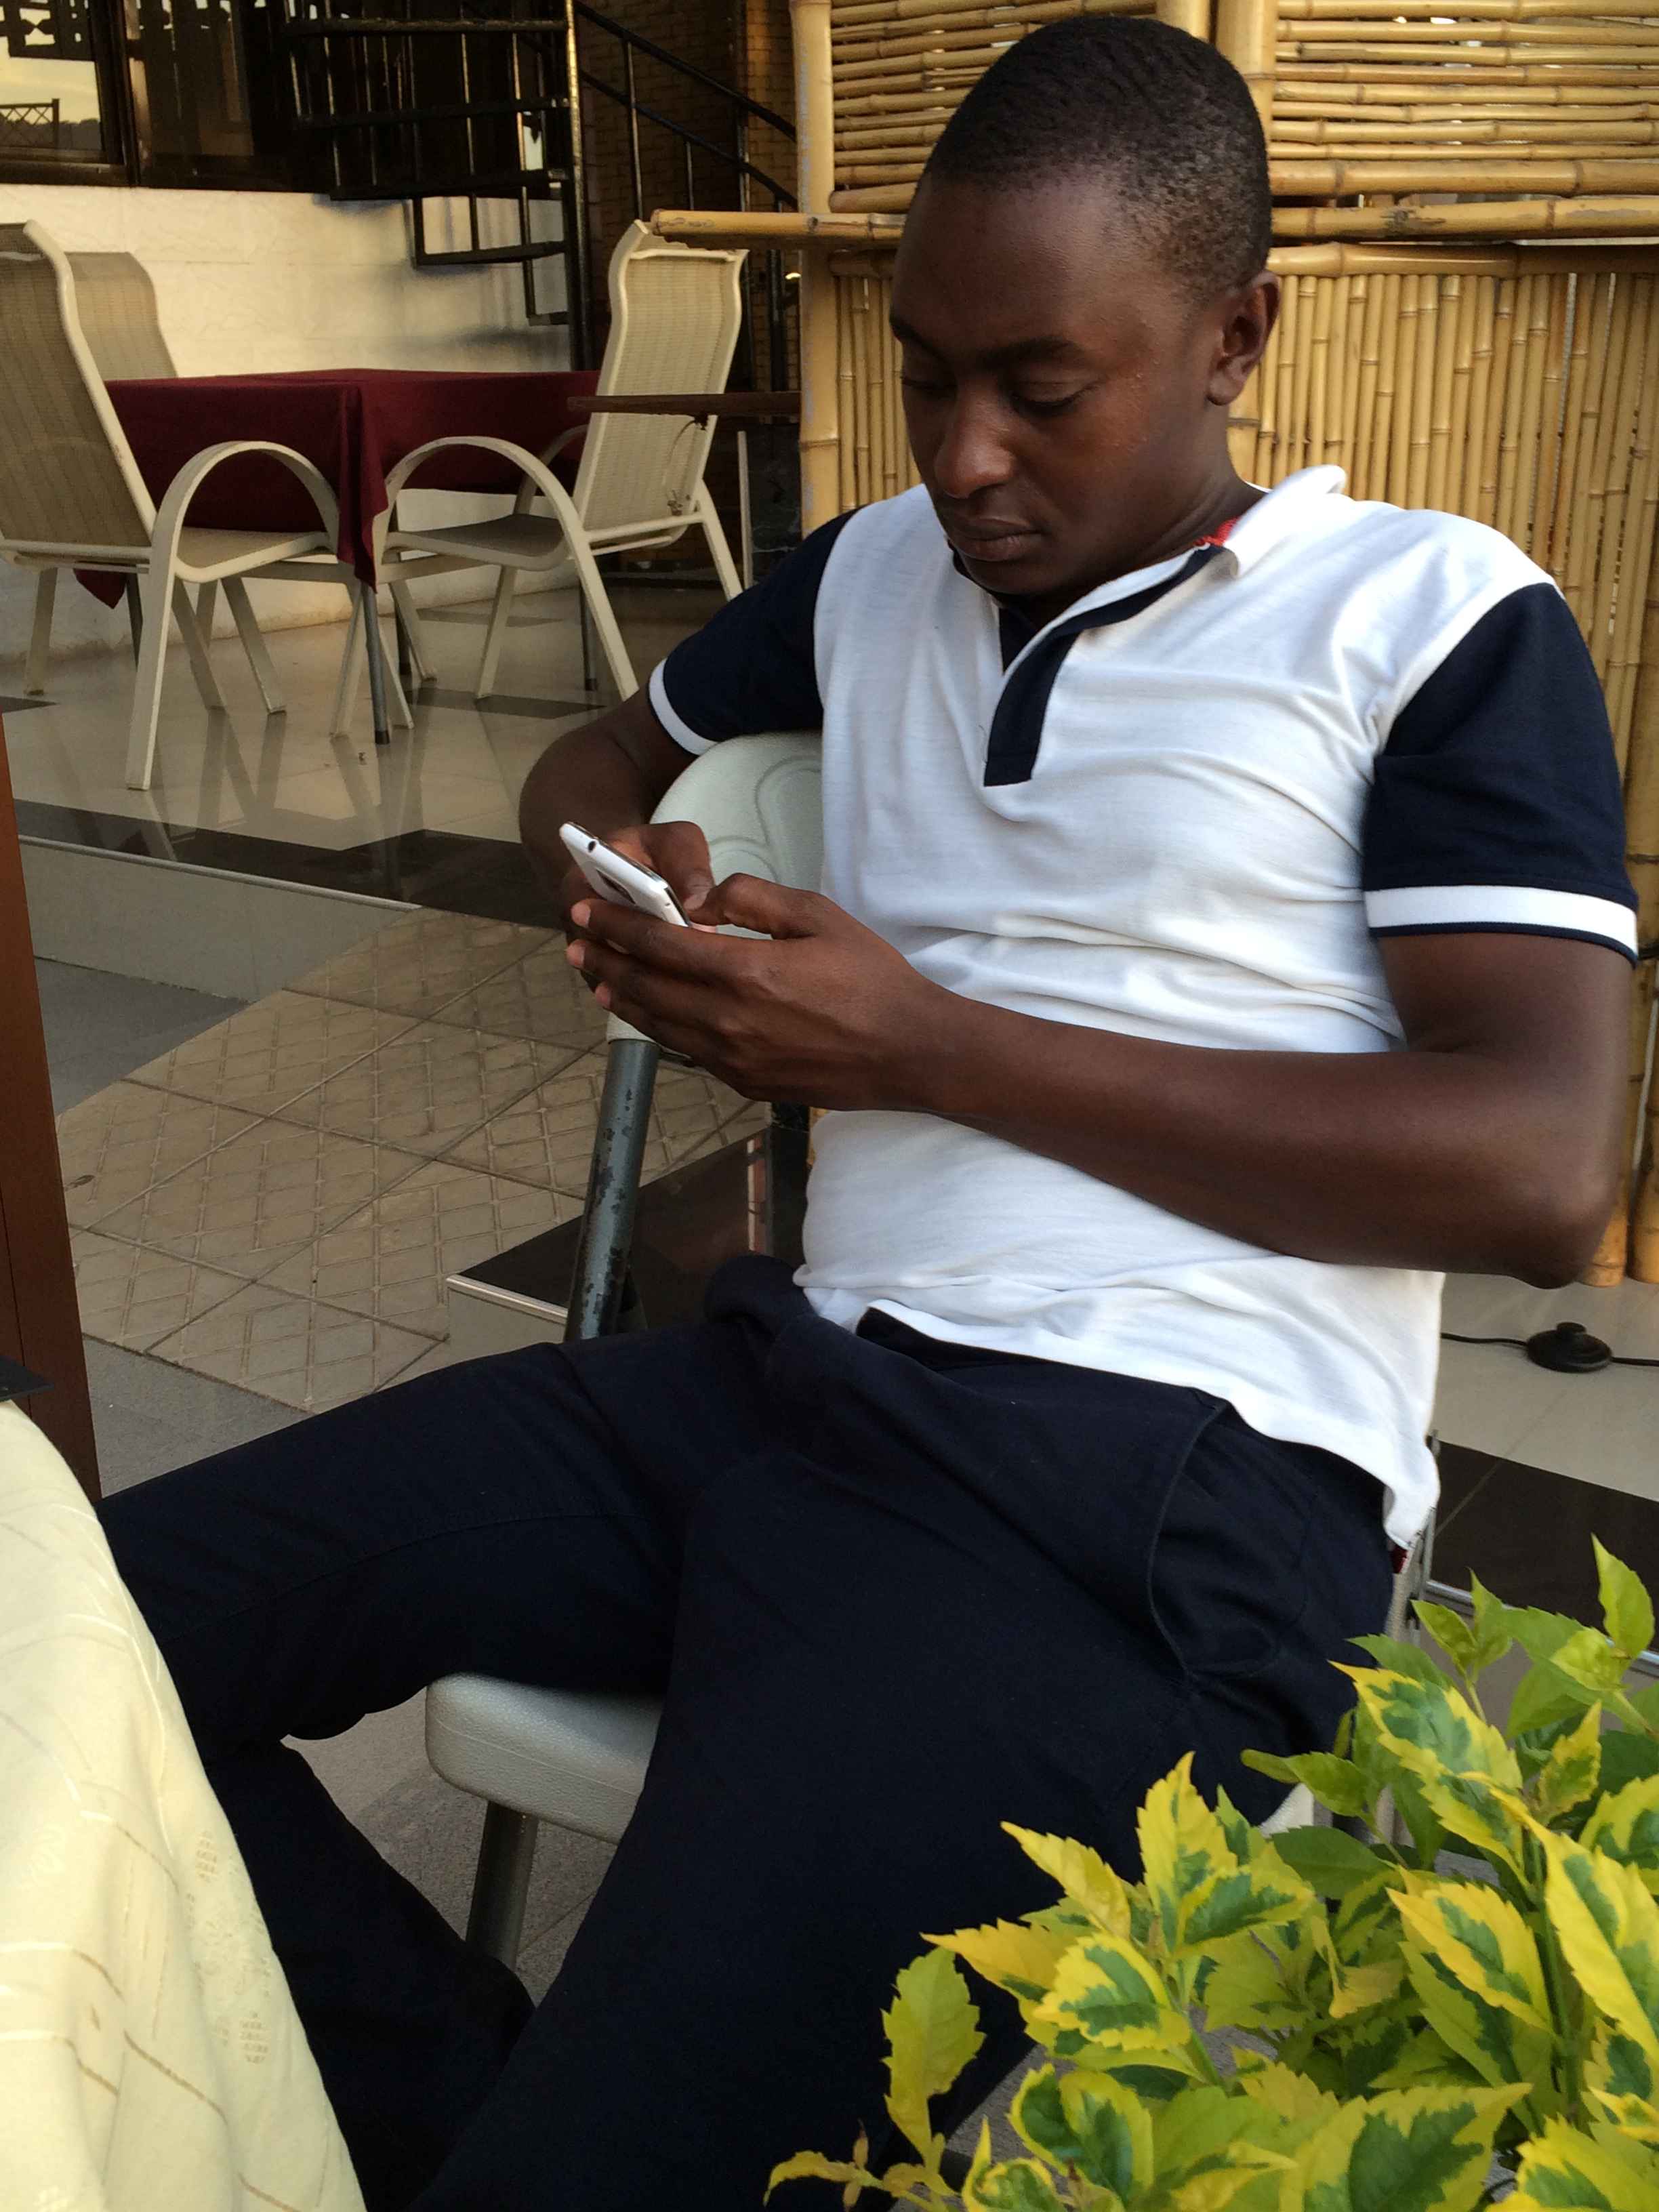 My Tanzanian fixer, Joachim, in the midst of fixing a problem for me.